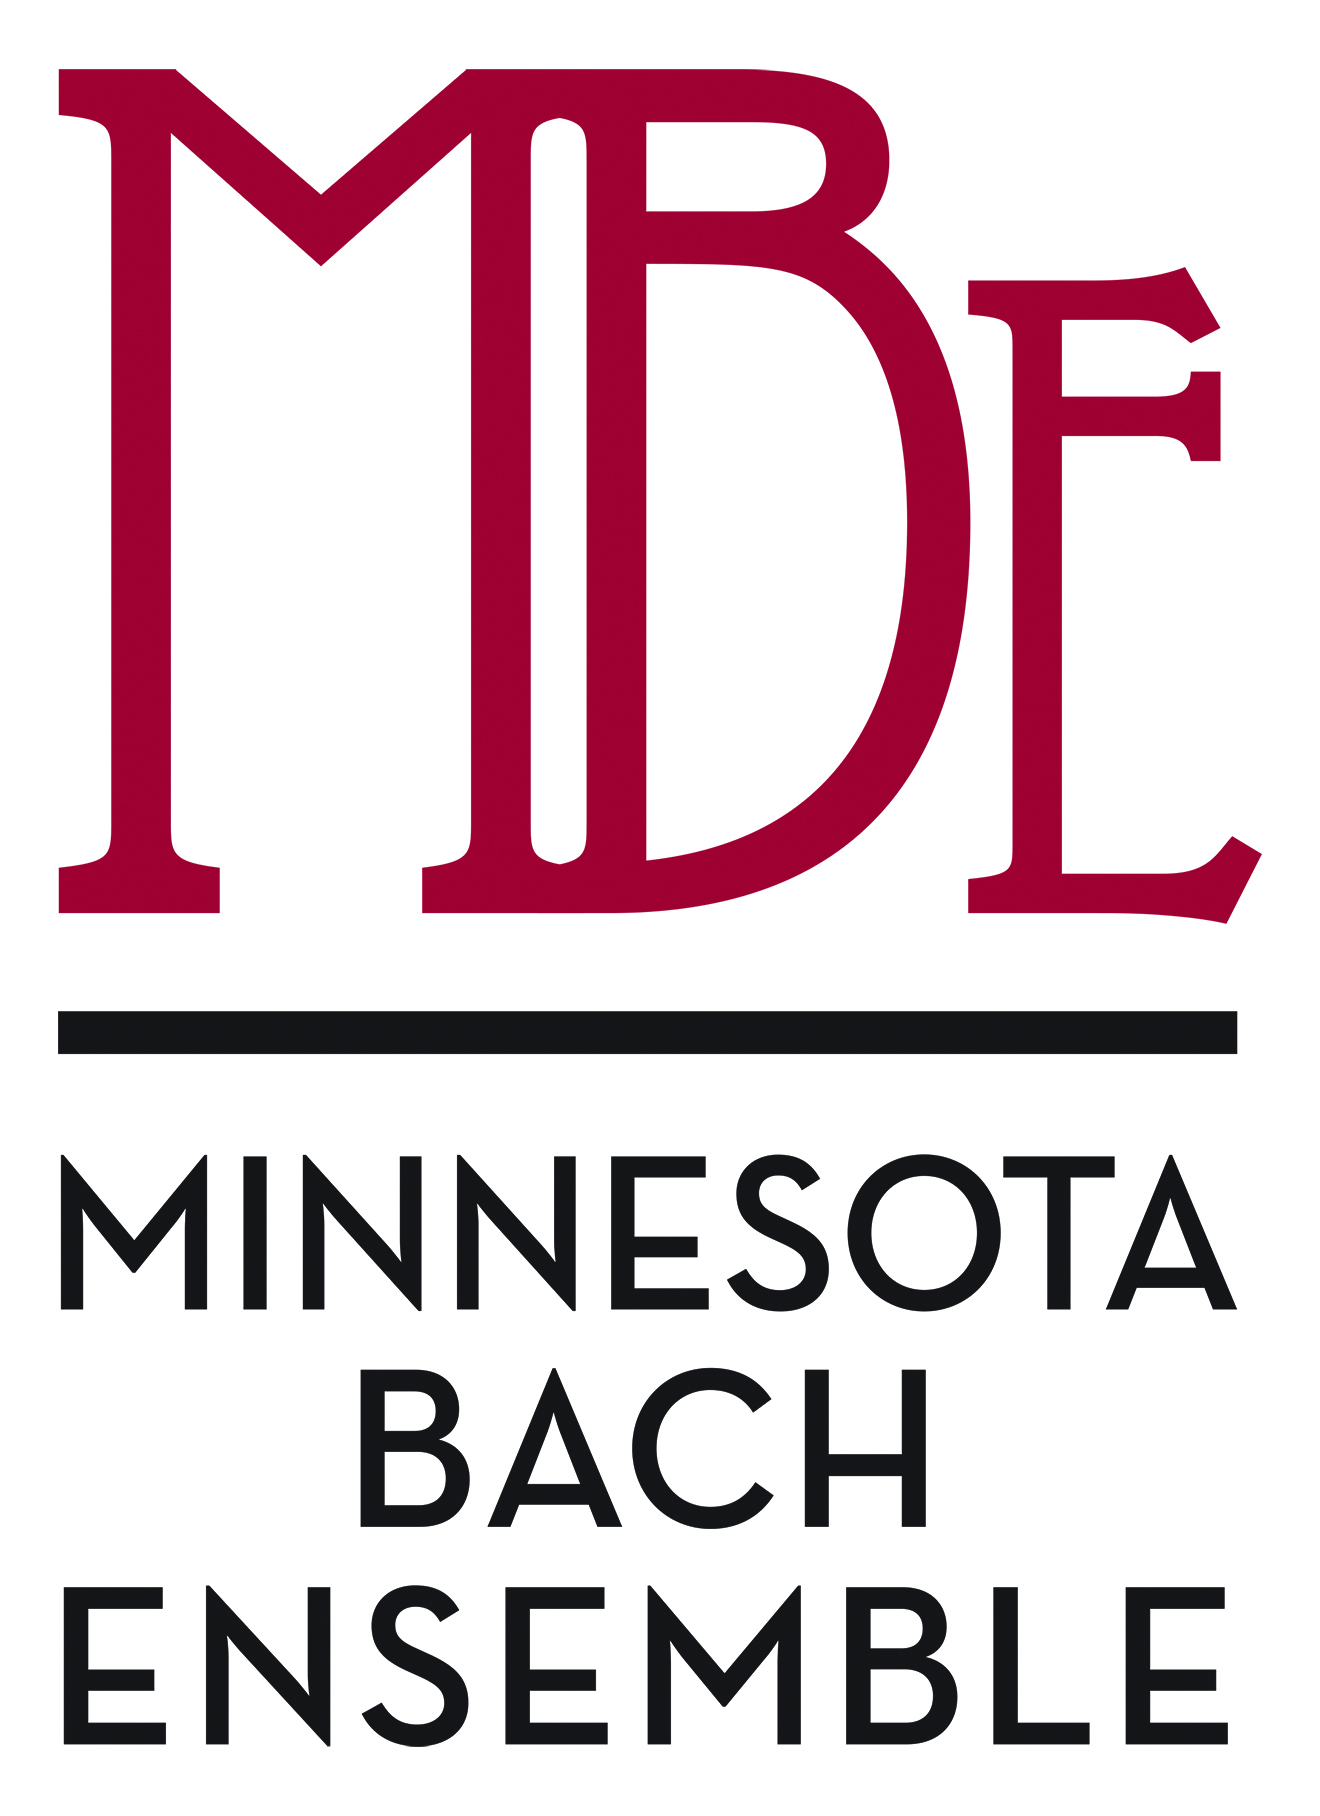 Minnesota Bach Ensemble